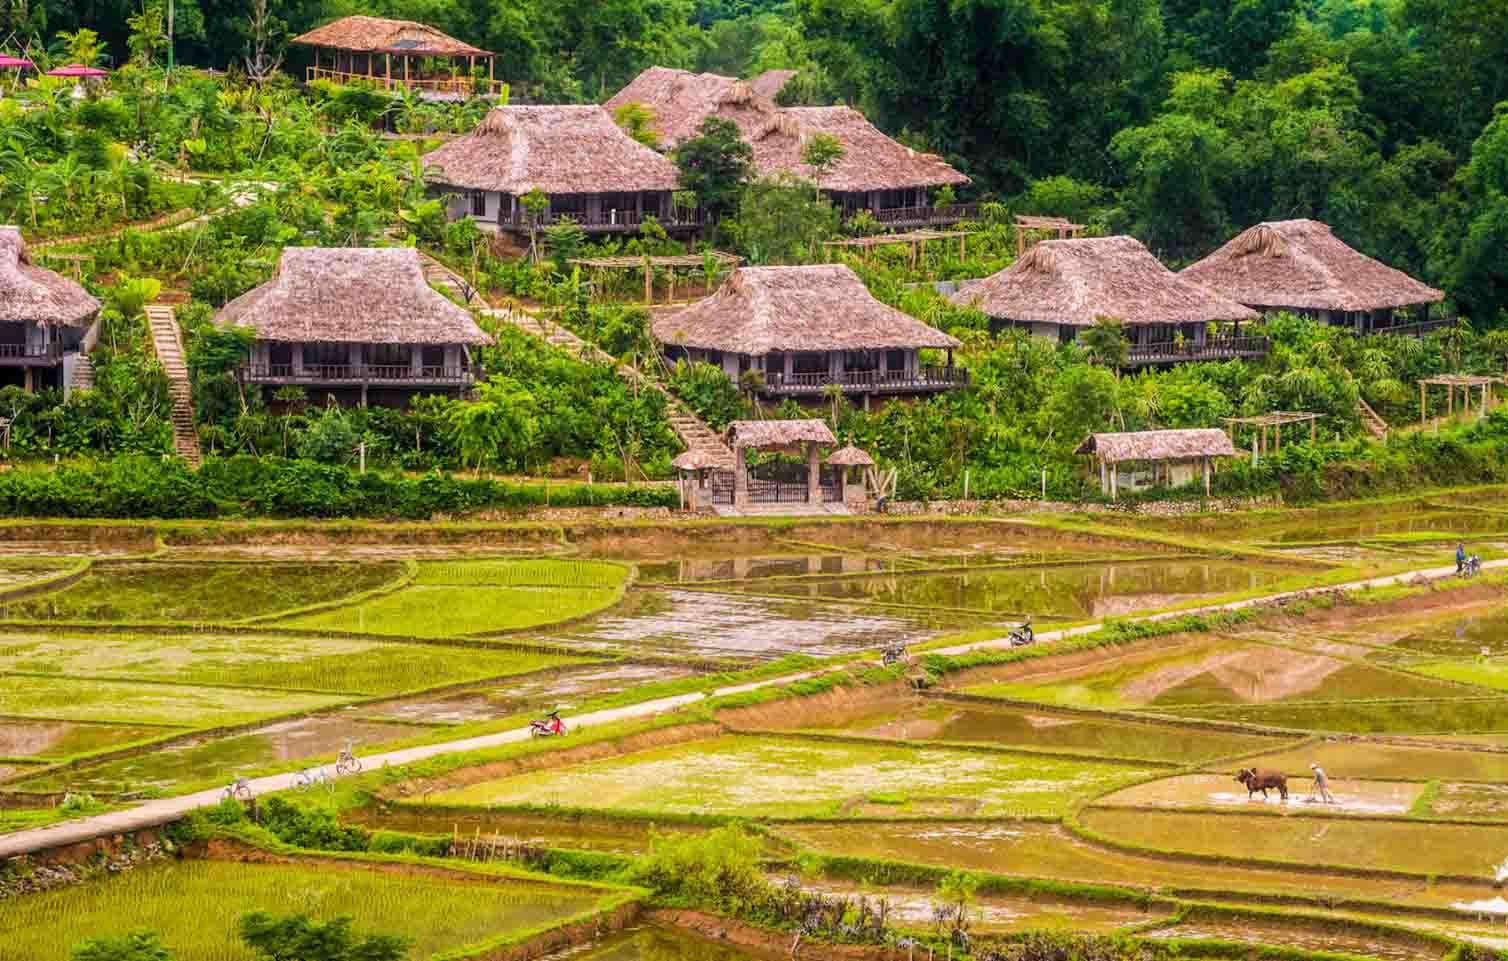 How to spend 2 days and 1 night at Ban Lac Mai Chau